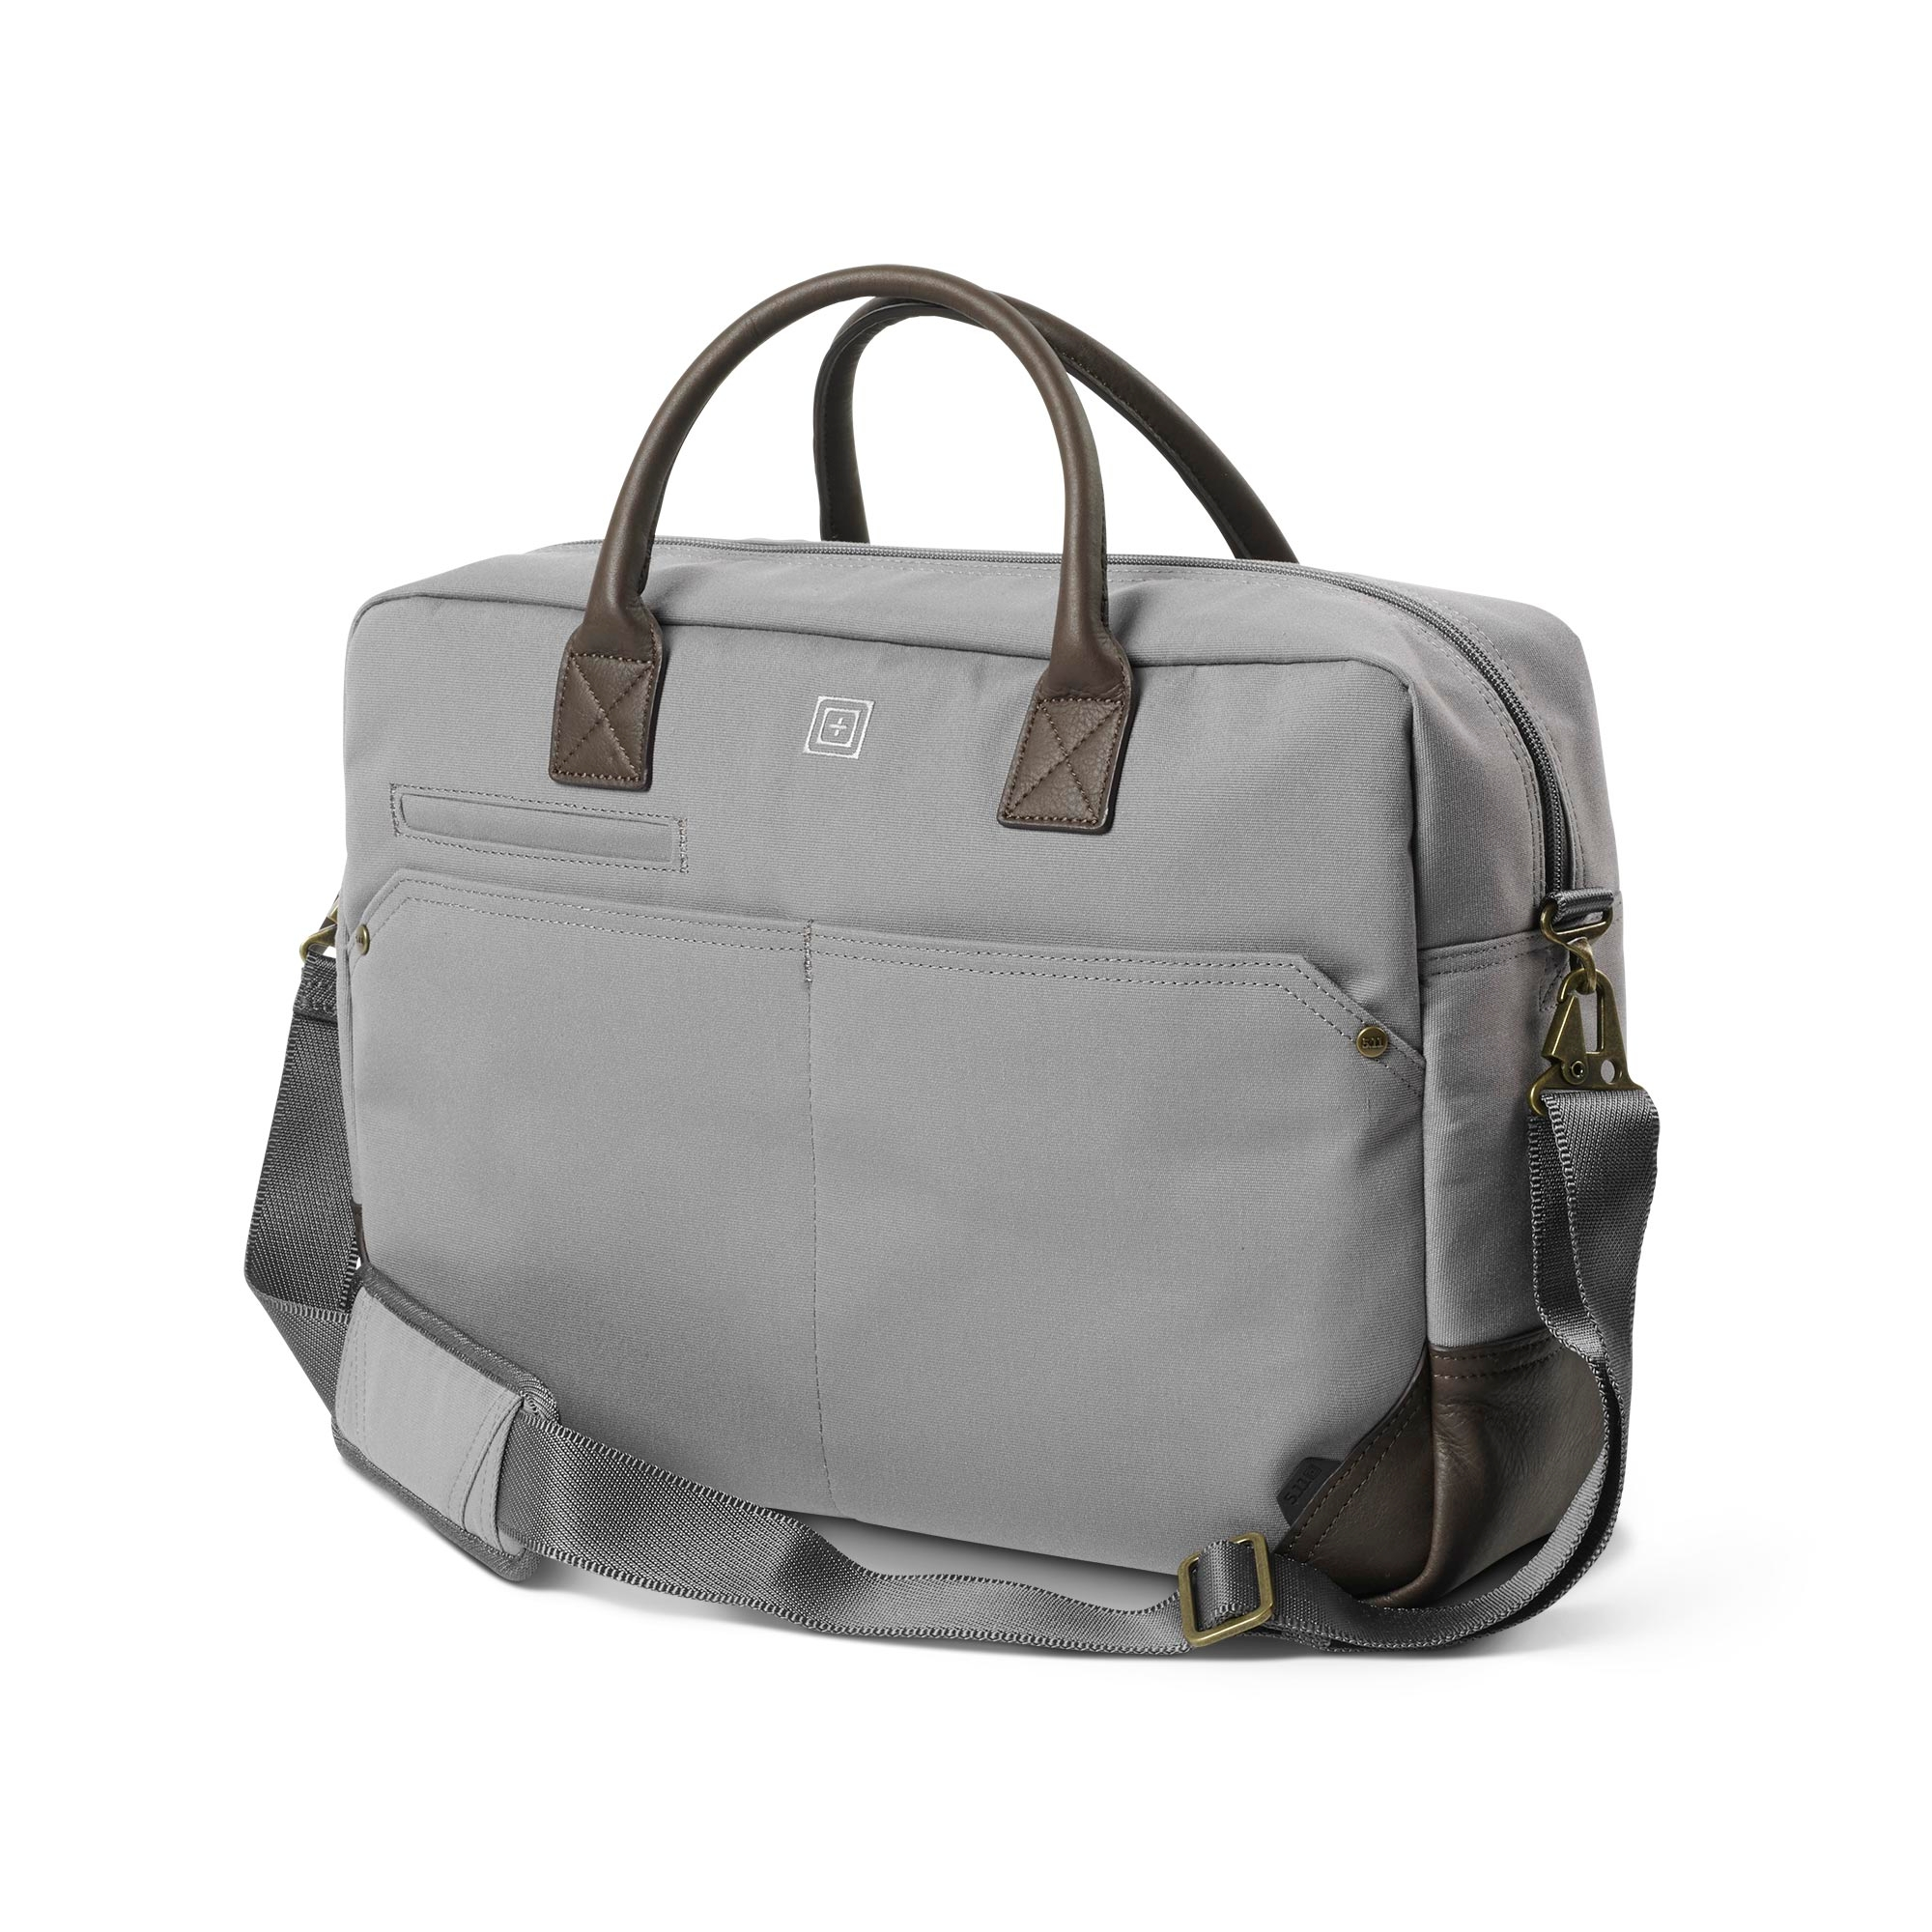 5.11 Tactical Mission Ready™ Document Bag (Grey)